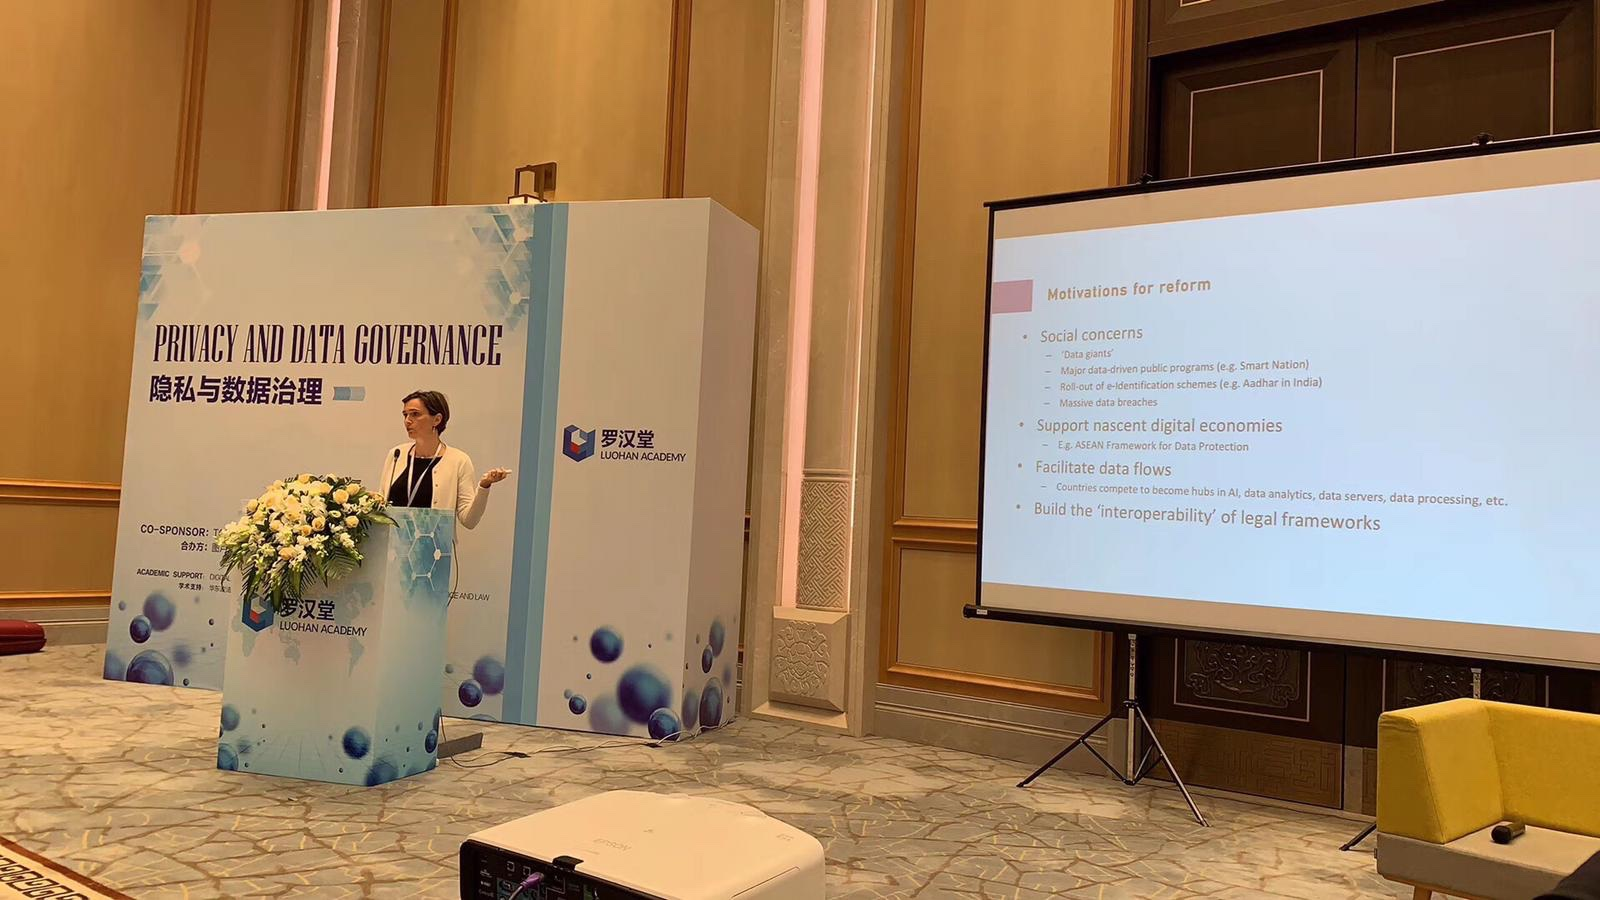 Dr Clarisse Girot of the Asian Business Law Institute at the Luohan Academy's Privacy and Data Governance conference